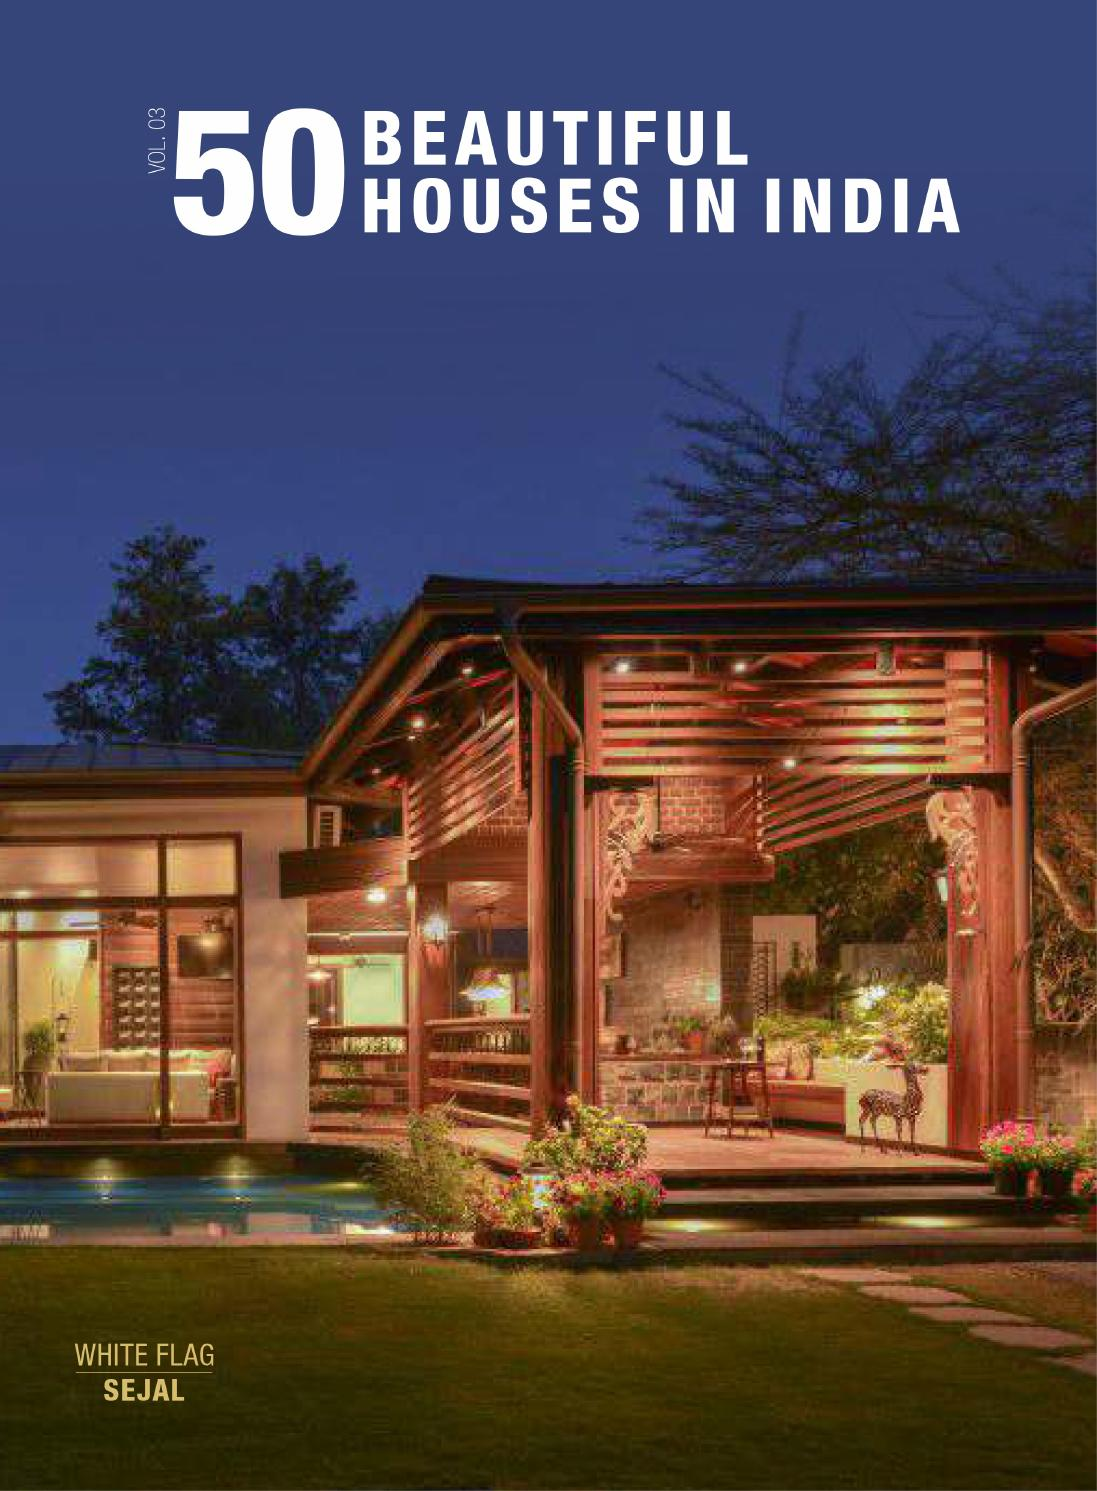 50 beautiful houses in india vol 3 by spicetree design for Beautiful house video